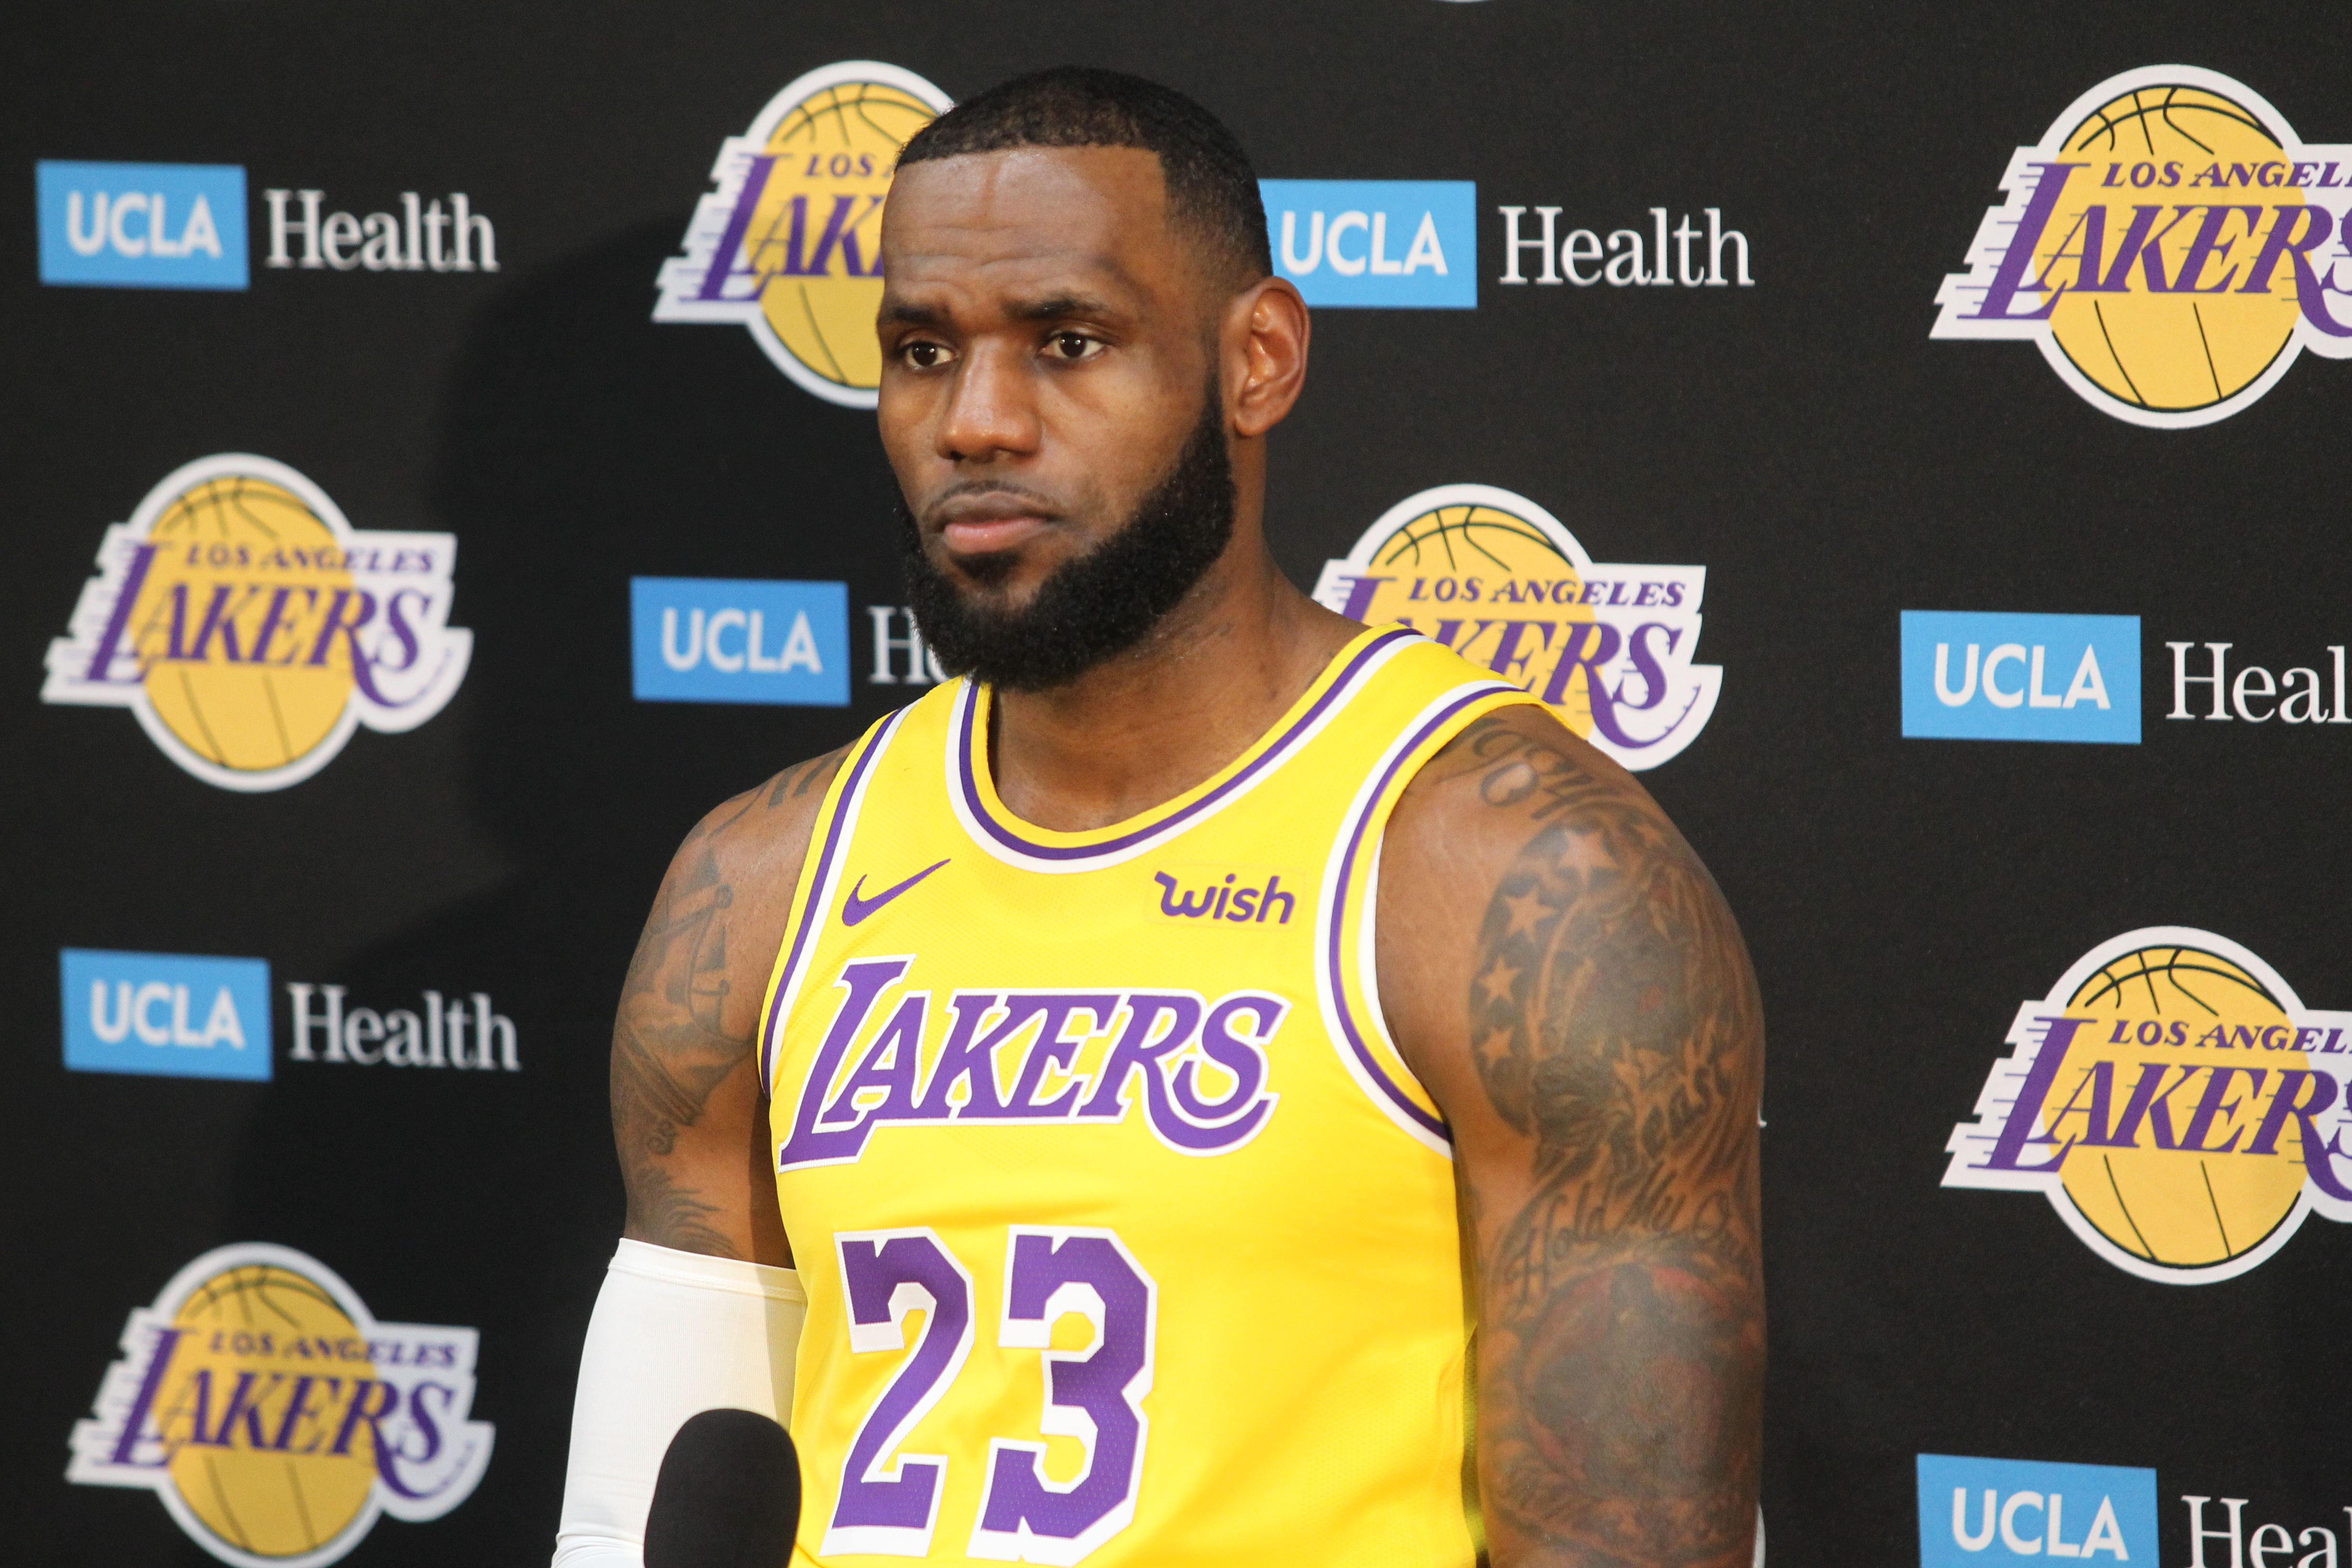 Monday September 24, 2018; Los Angeles Lakers at Los Angeles Lakers Media Day at UCLA Health Center, El Seundo CA.Pictured: LeBron JamesRef: SPL5027246 240918 NON-EXCLUSIVEPicture by: London Ent / SplashNews.comSplash News and PicturesLos Angeles: 310-821-2666New York: 212-619-2666London: 0207 644 7656Milan: 02 4399 8577photodesk@splashnews.comWorld Rights